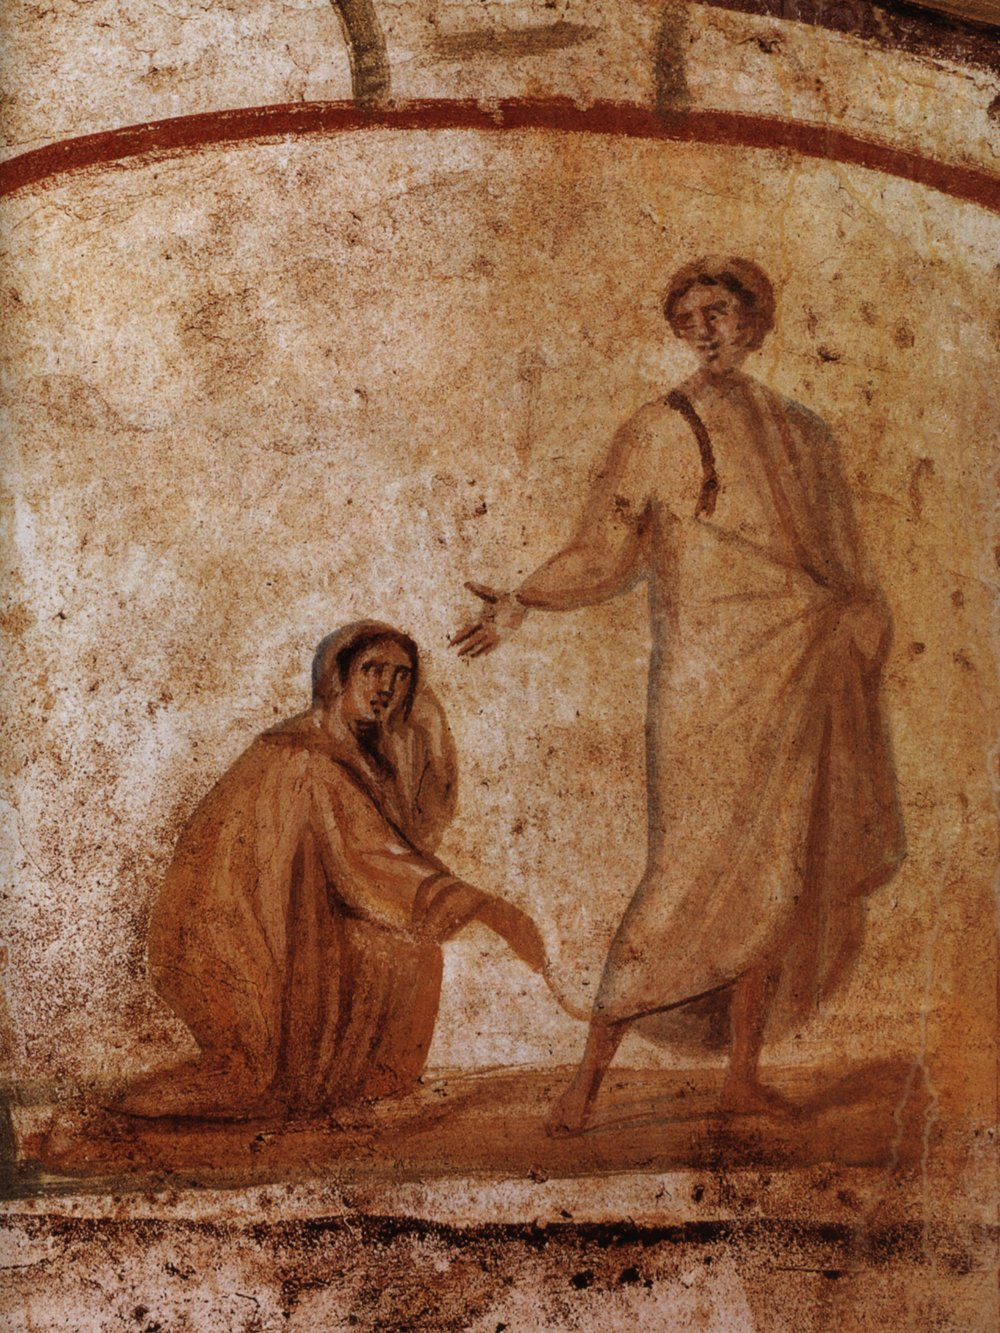 The healing of a bleeding woman, Rome, Catacombs of Marcellinus and Peter.